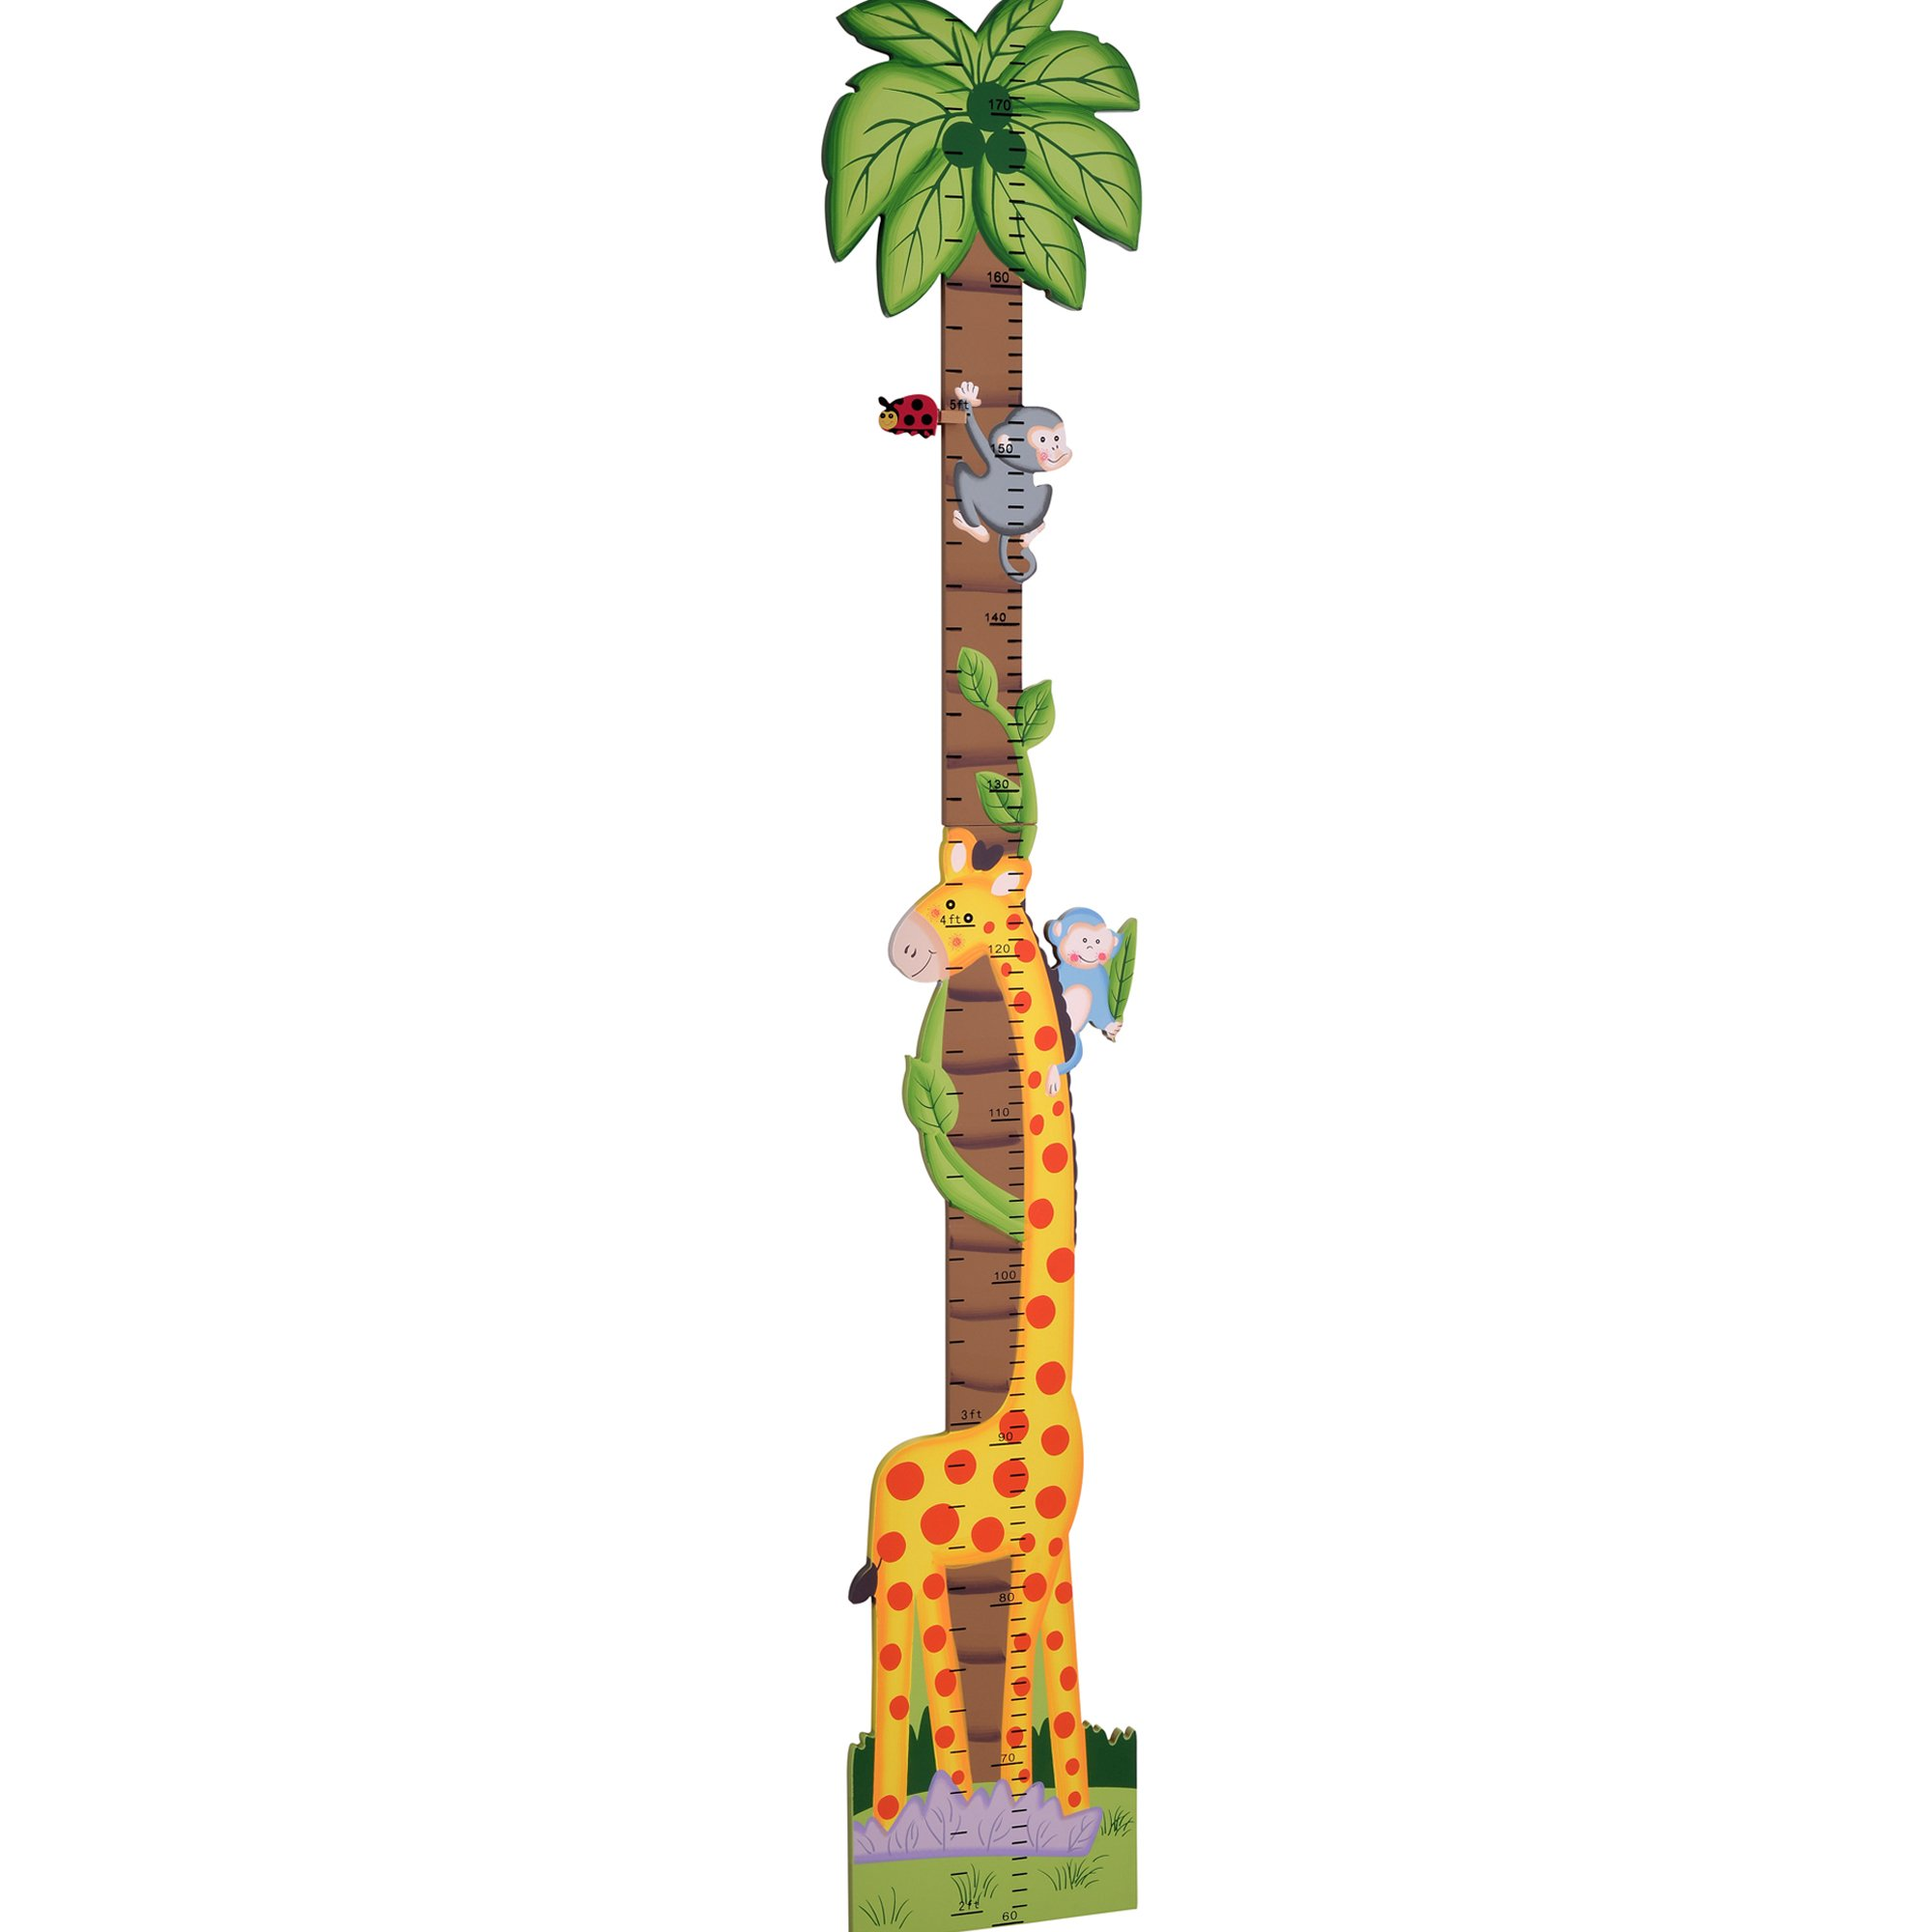 Teamson Design Corp Fantasy Fields - Sunny Safari Animals Thematic Kids Wooden Growth Chart | Imagination Inspiring Hand Painted Details | Non-Toxic, Lead Free Water-based Paint